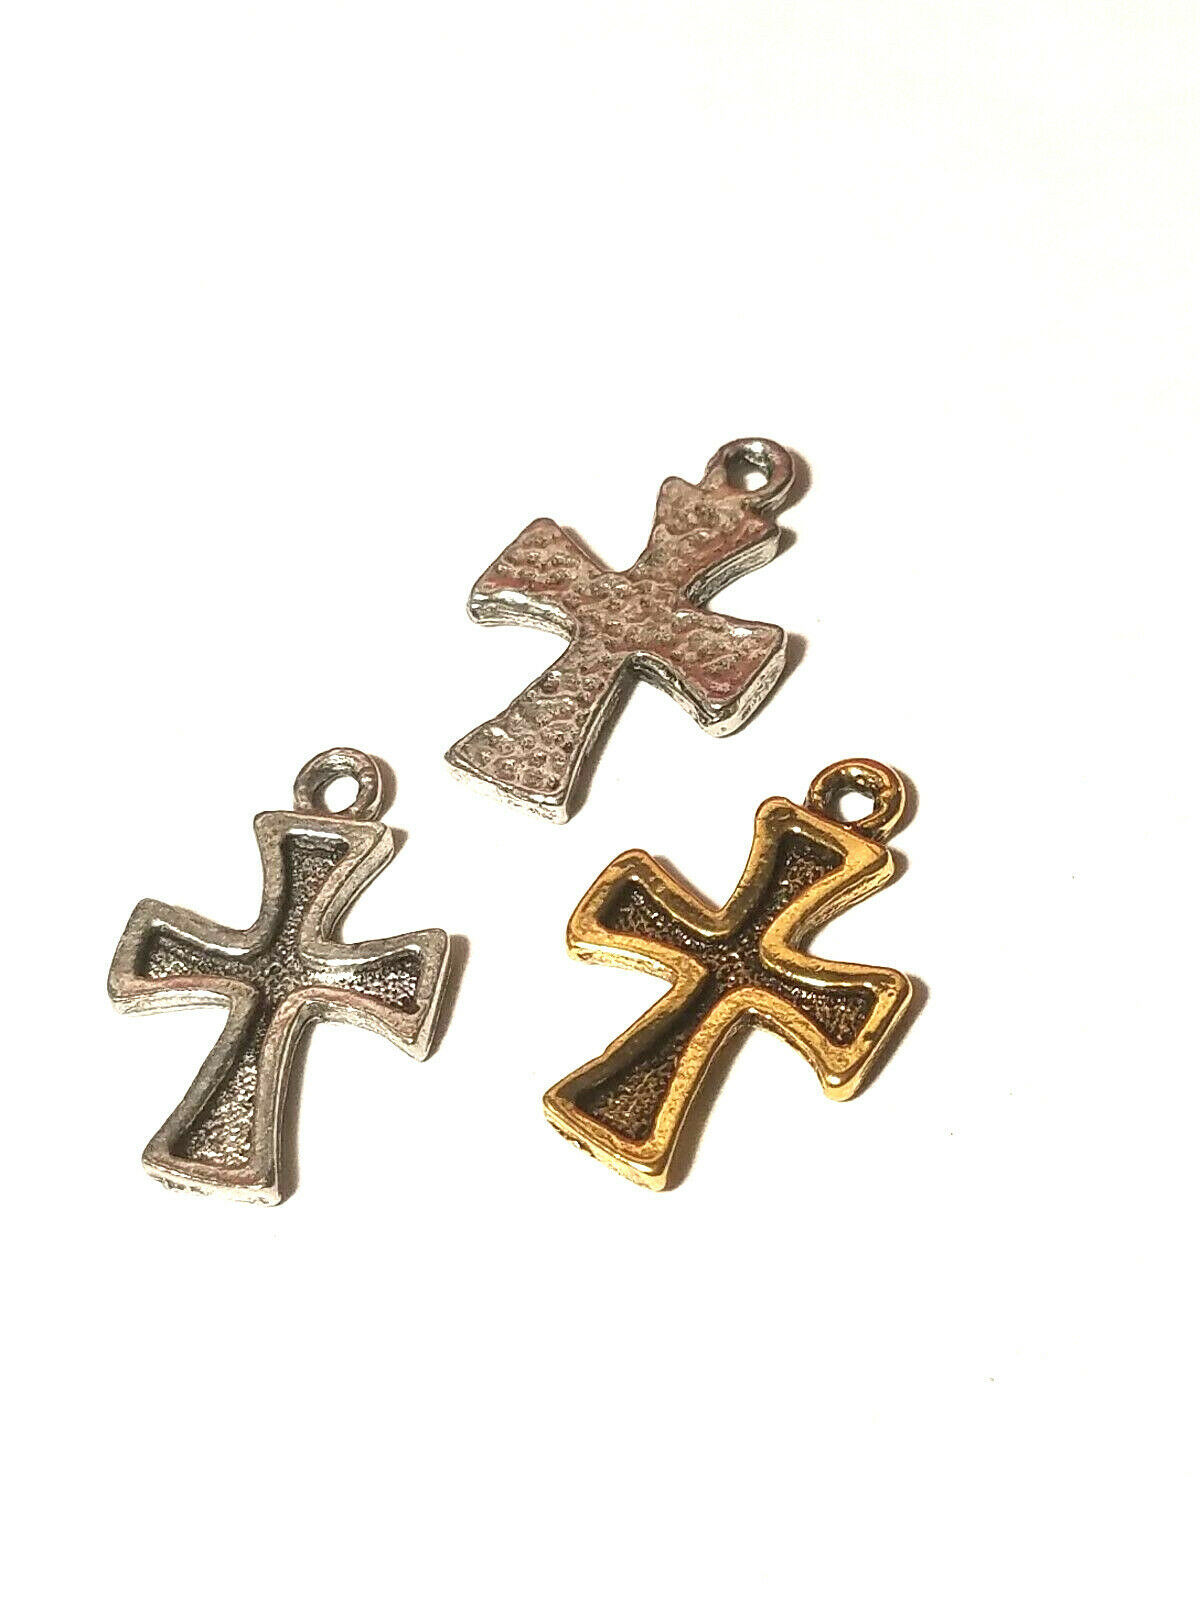 Cross Pewter Pendant Charm - 18mm L x 30mm W x 2mm D